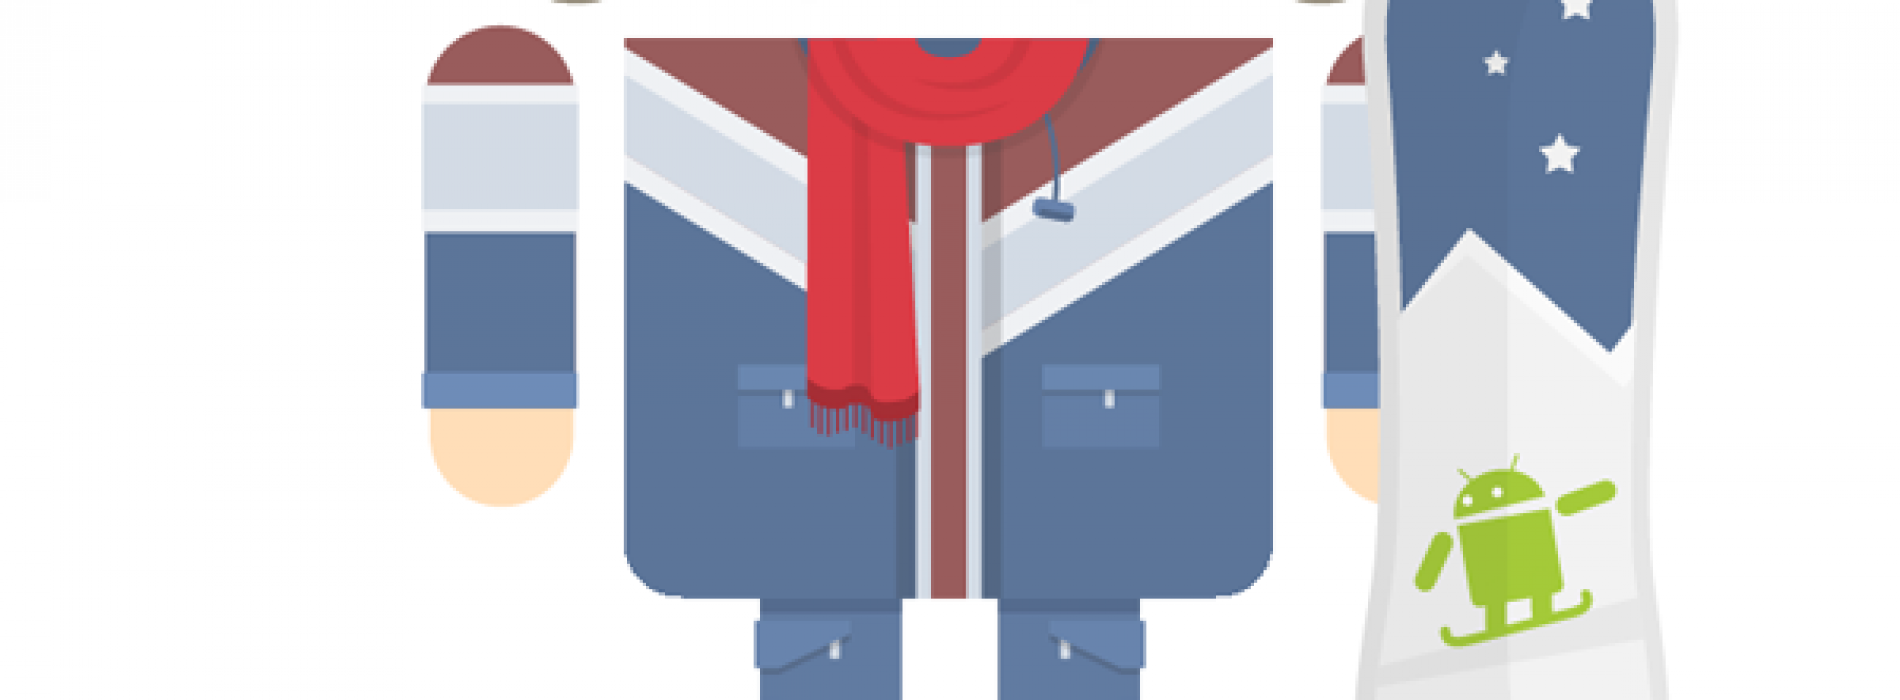 Androidwinterfy yourself with the latest Androidify update